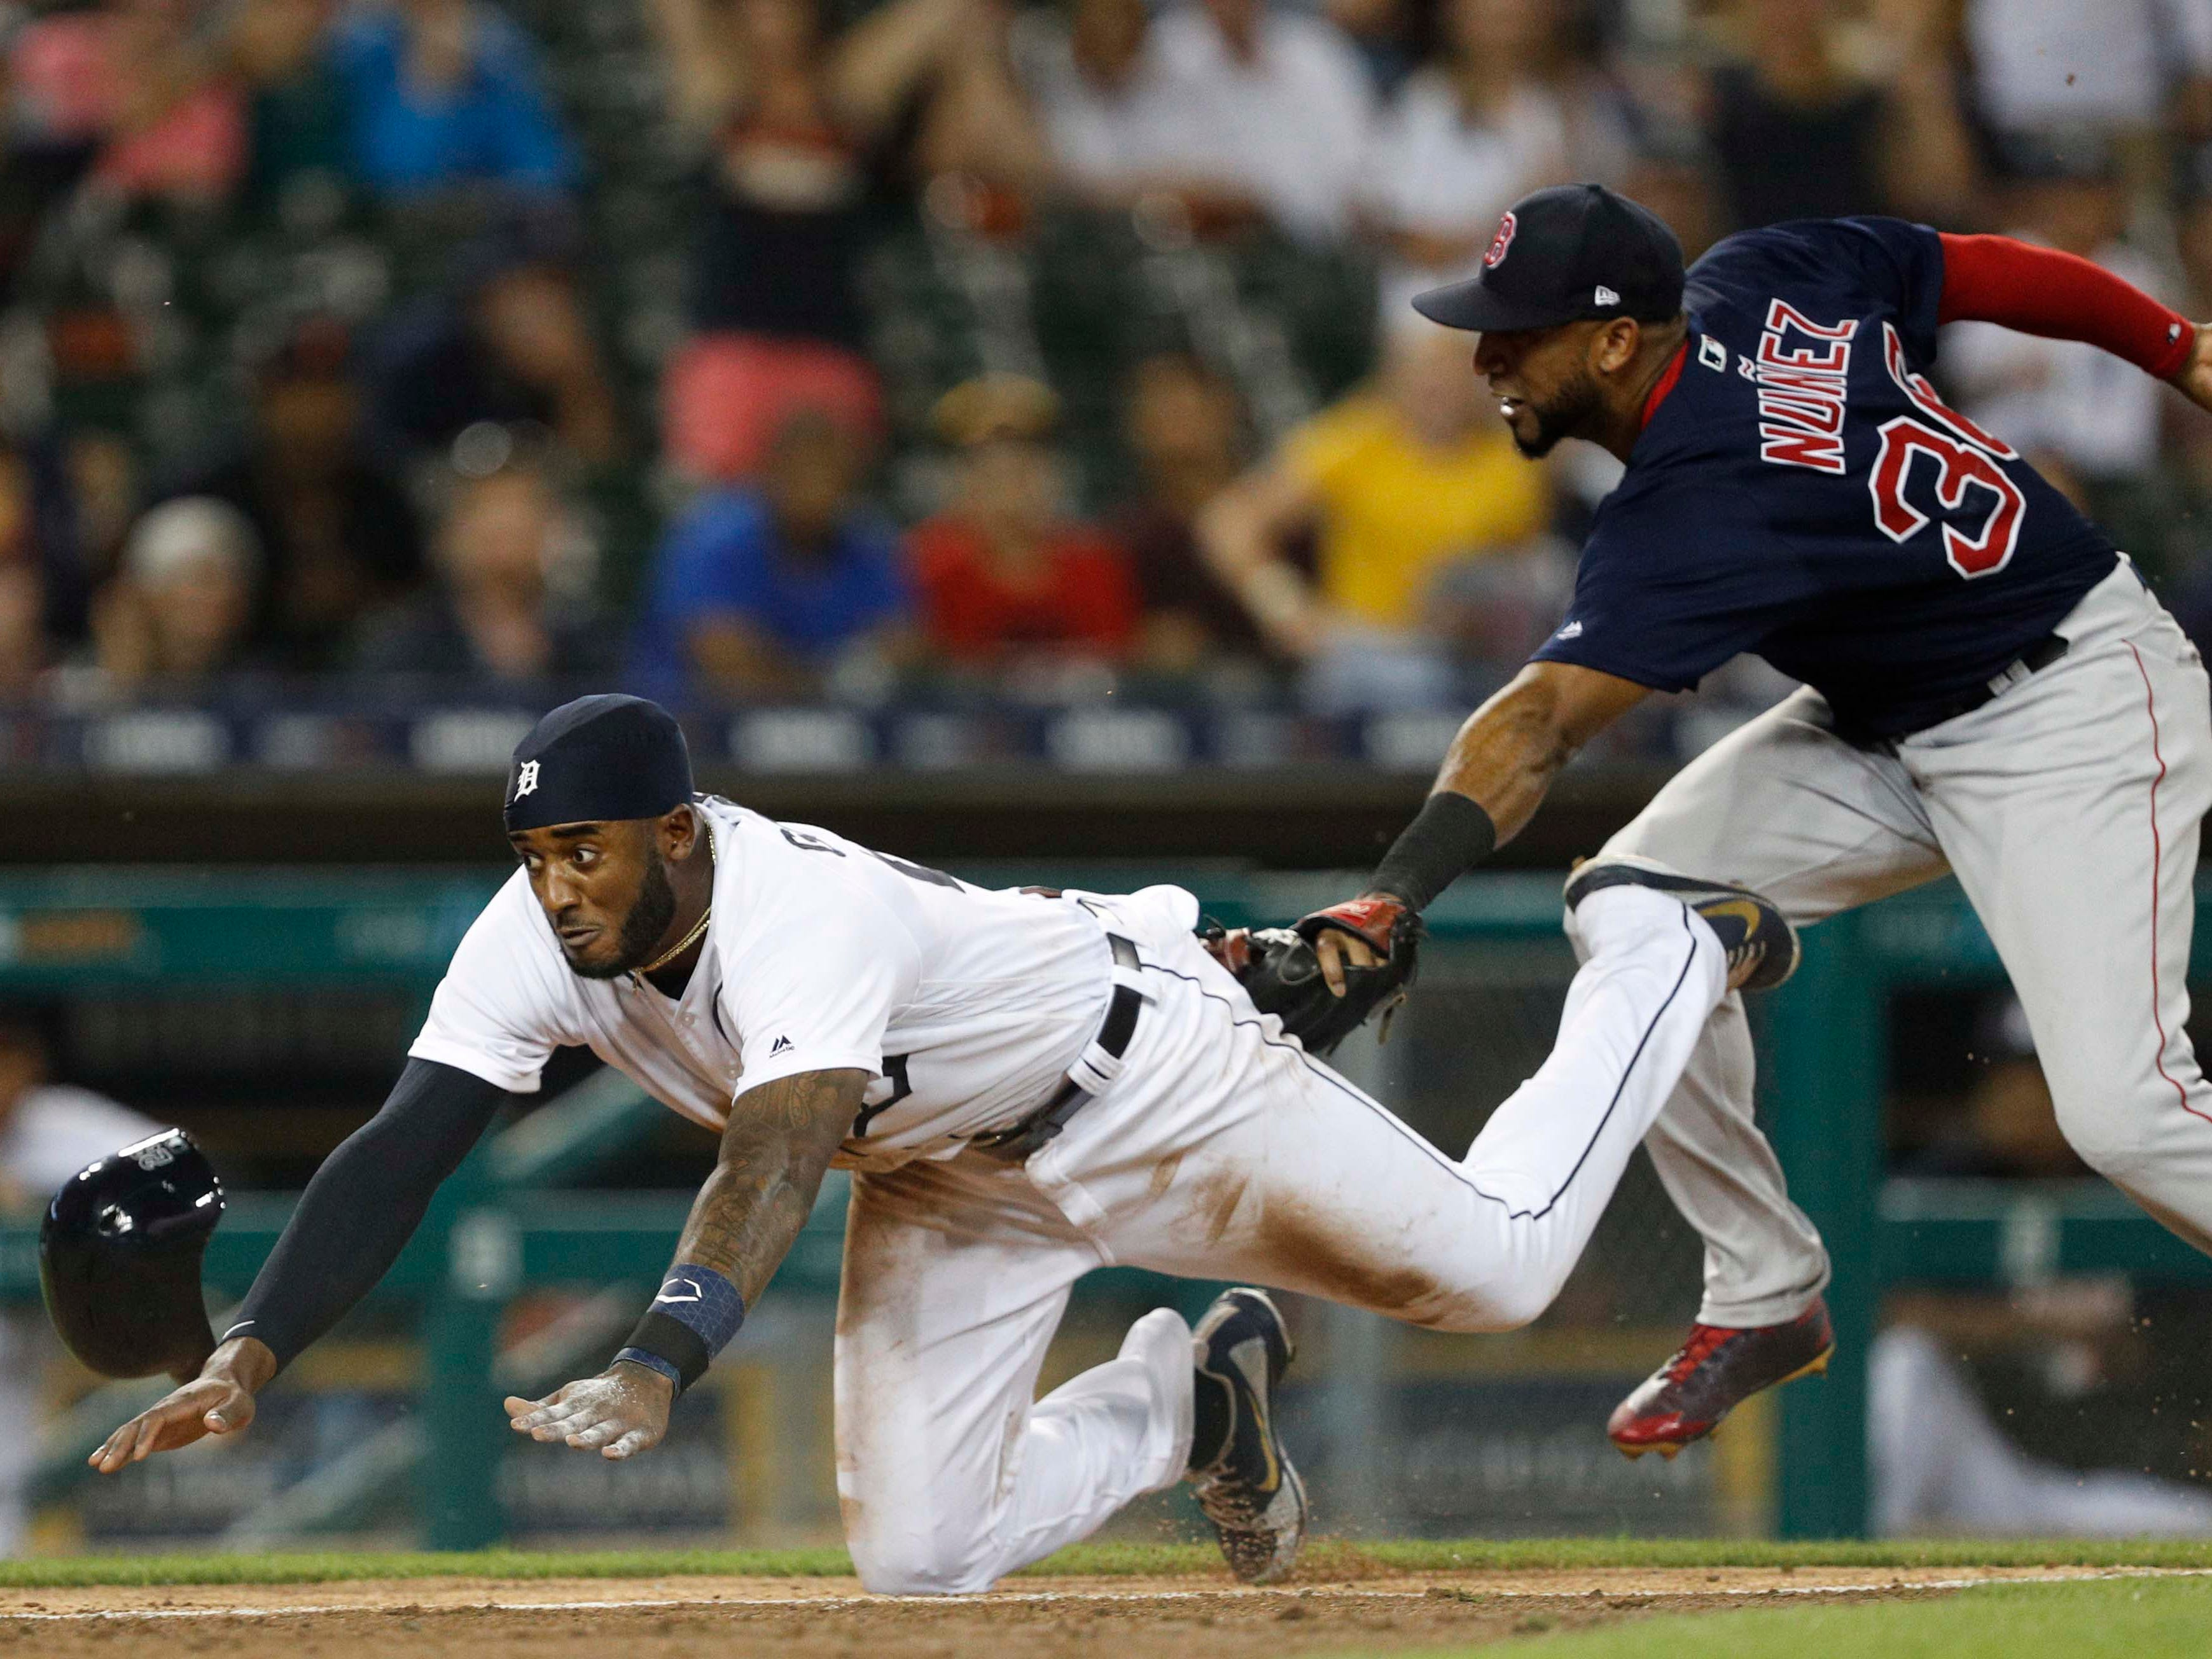 July 20 in Detroit: Red Sox 1, Tigers 0. Second baseman Eduardo Nunez tags out Niko Goodrum at home during the eighth inning at Comerica Park.